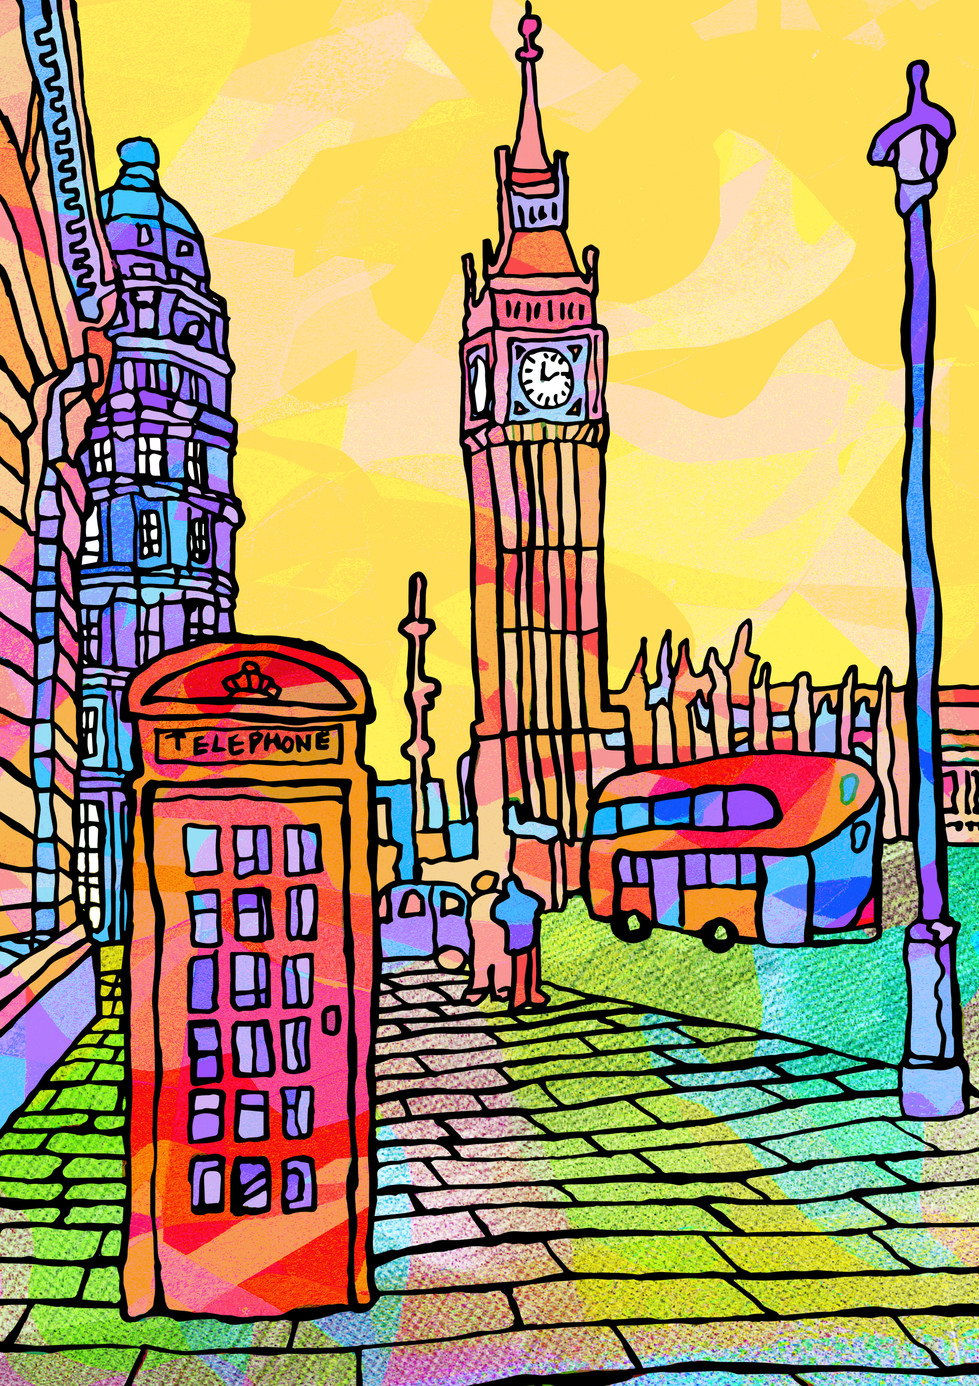 London Telephone Booth Illustration 1.jp